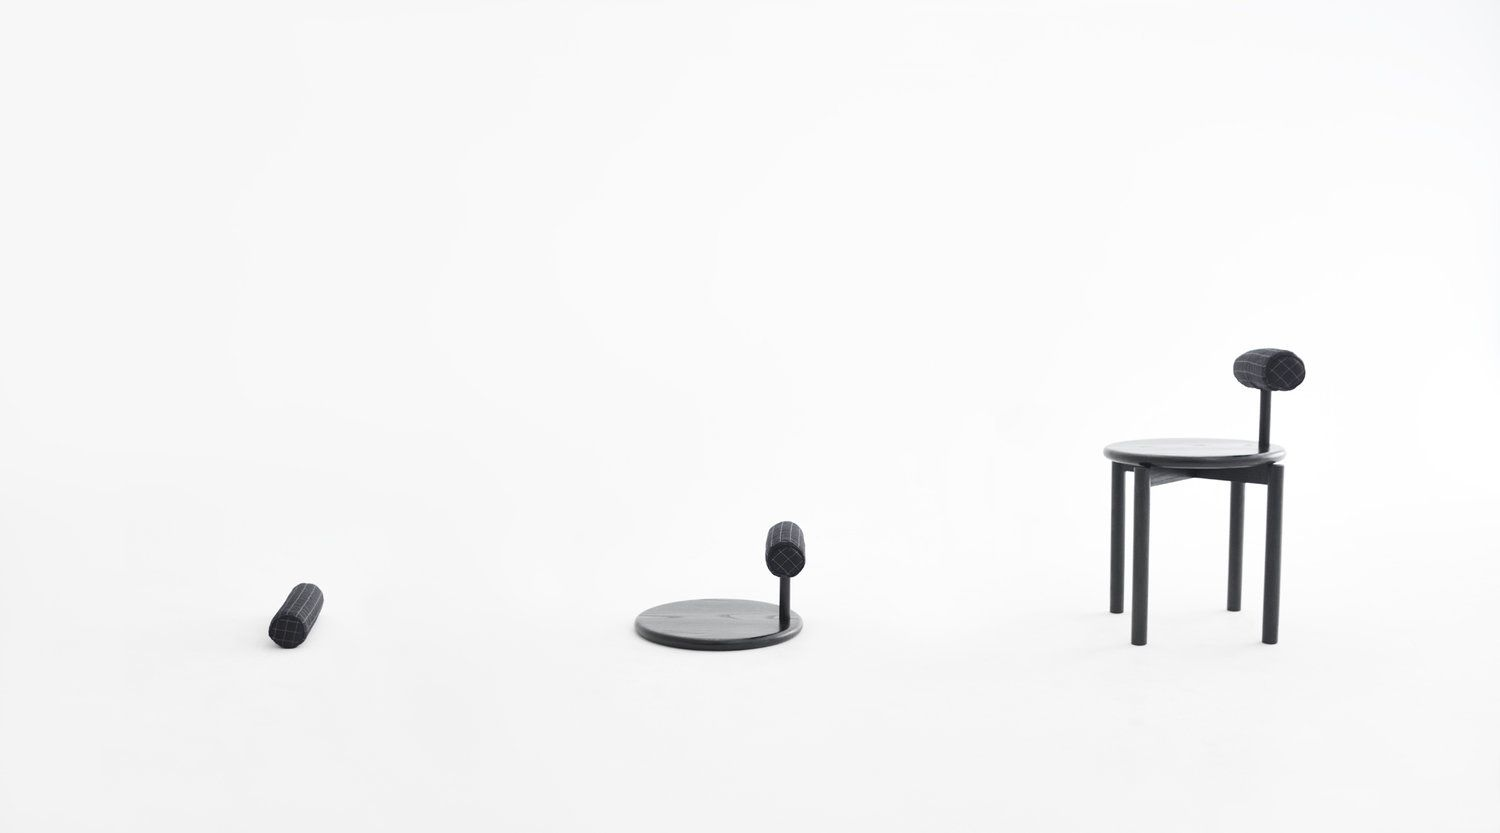 The 'Wa' series consists of a pillow, a legless chair and a chair.